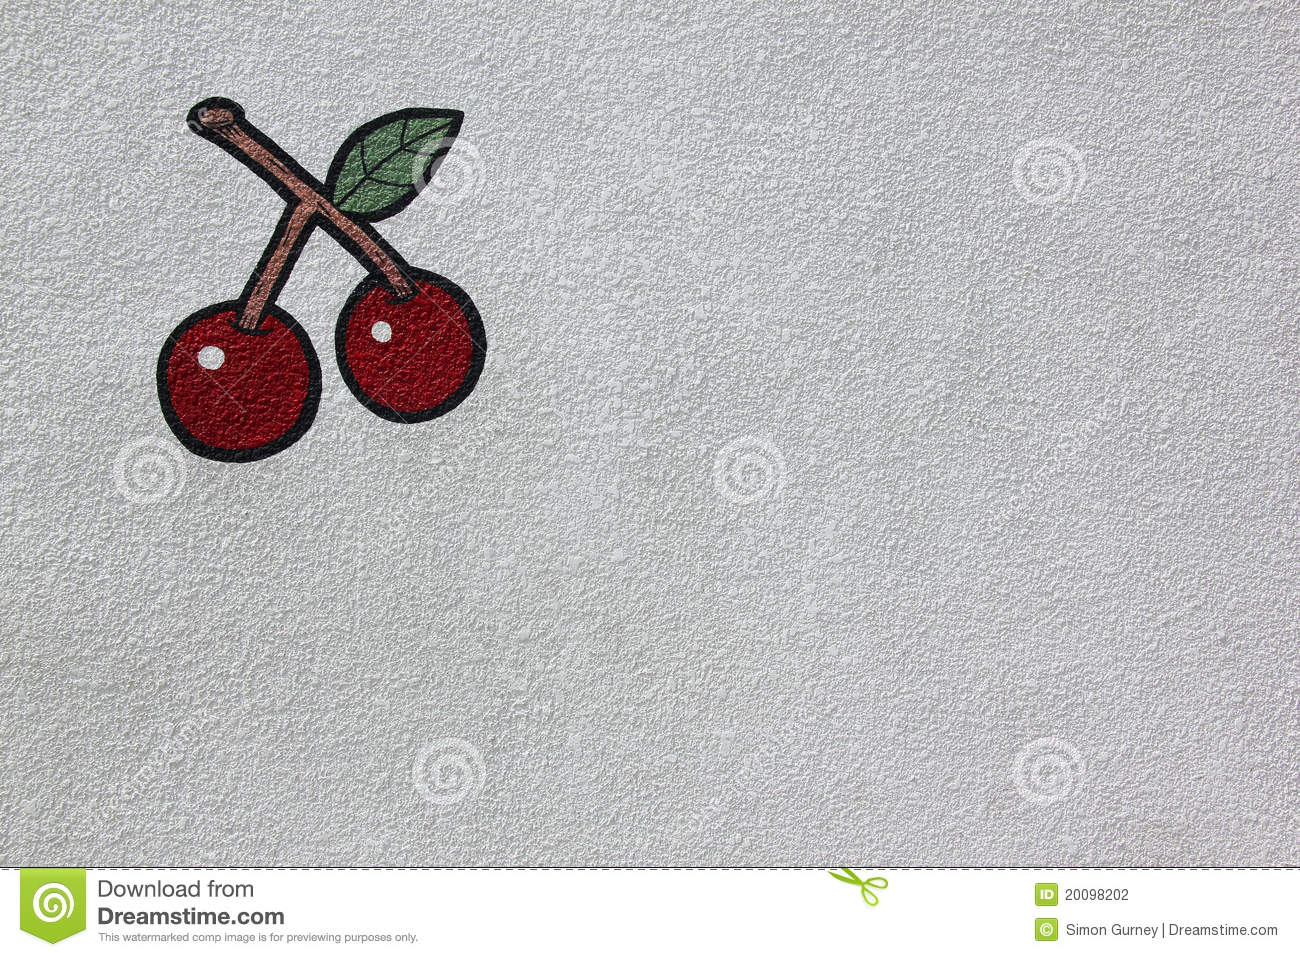 Bright red cherries painted on white wall